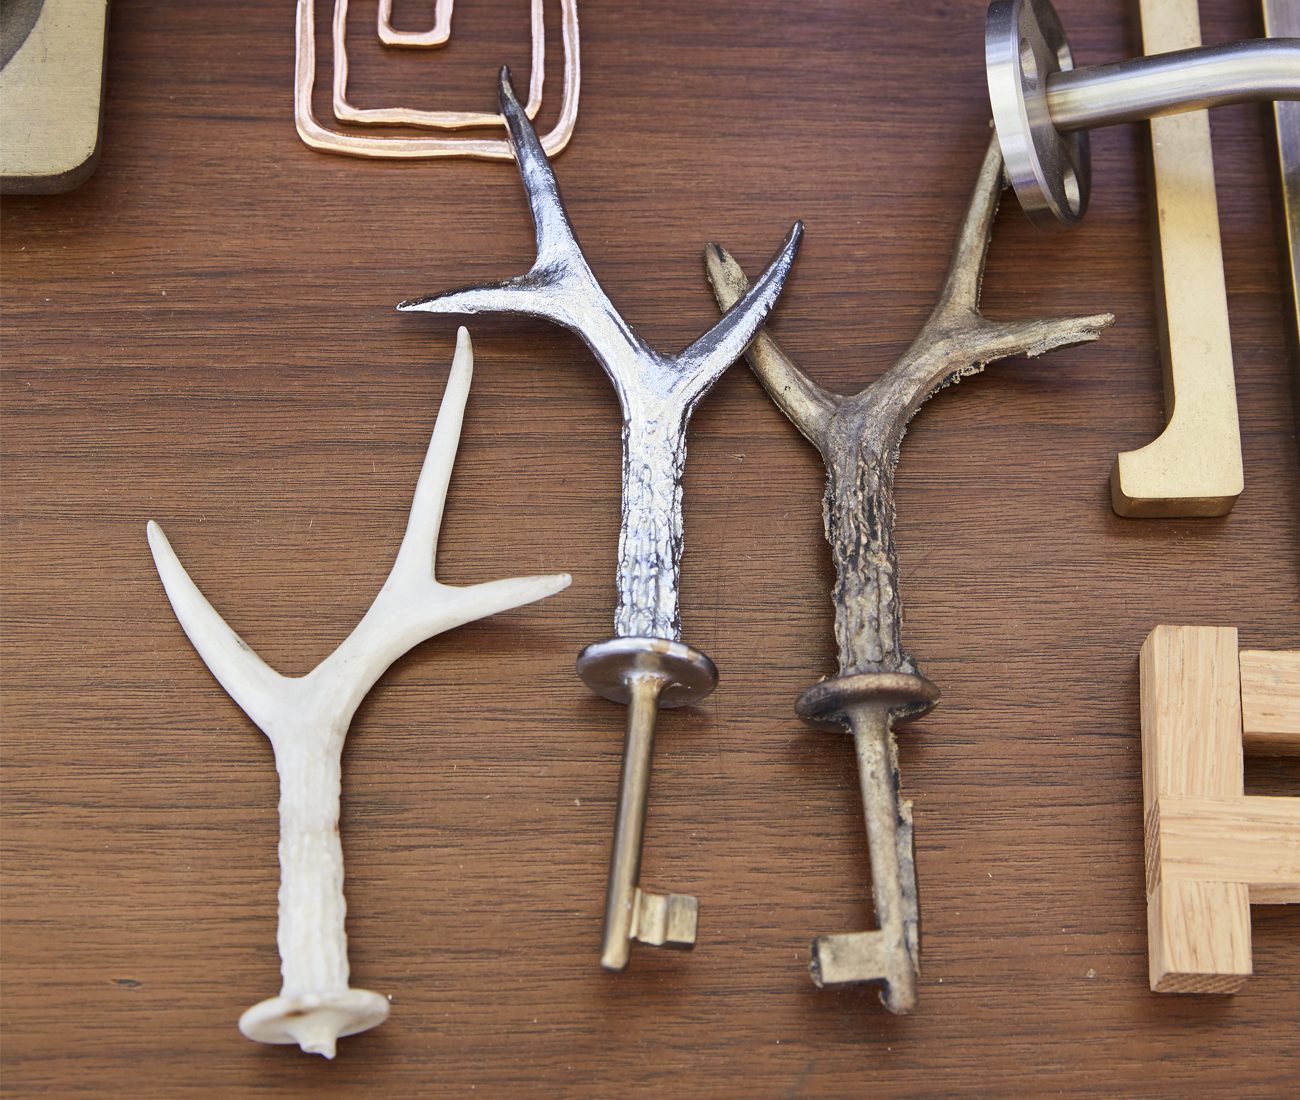 Cast bronze keys sit among custom hinges and handles.